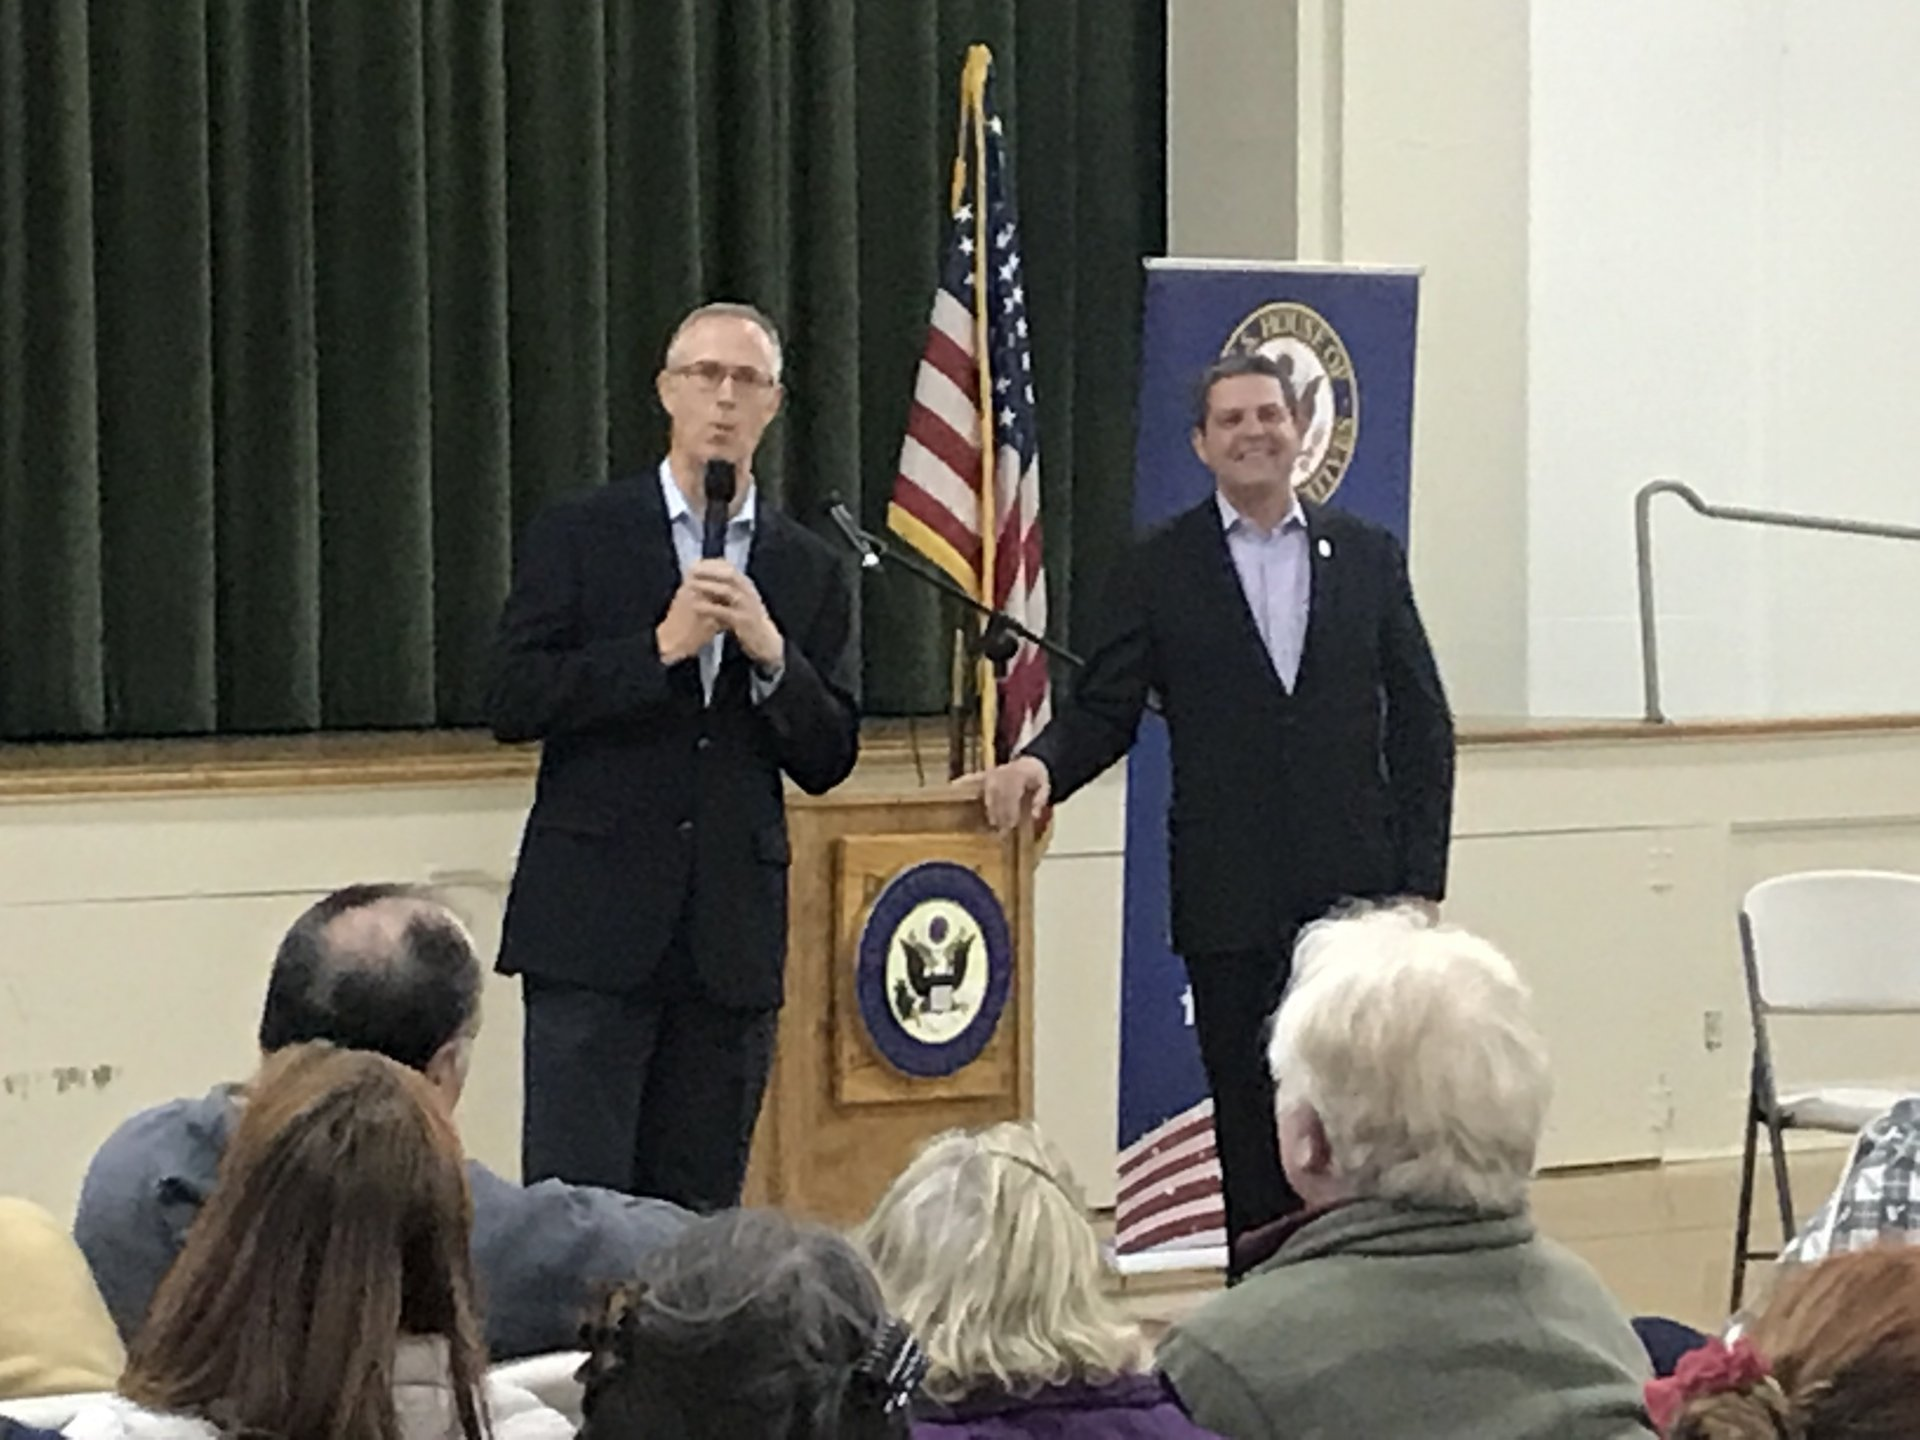 State representative Jim Wood (right) and congressman Jared Huffman (left) answer questions at town hall in Eureka. | Photo by Amanda Schultz